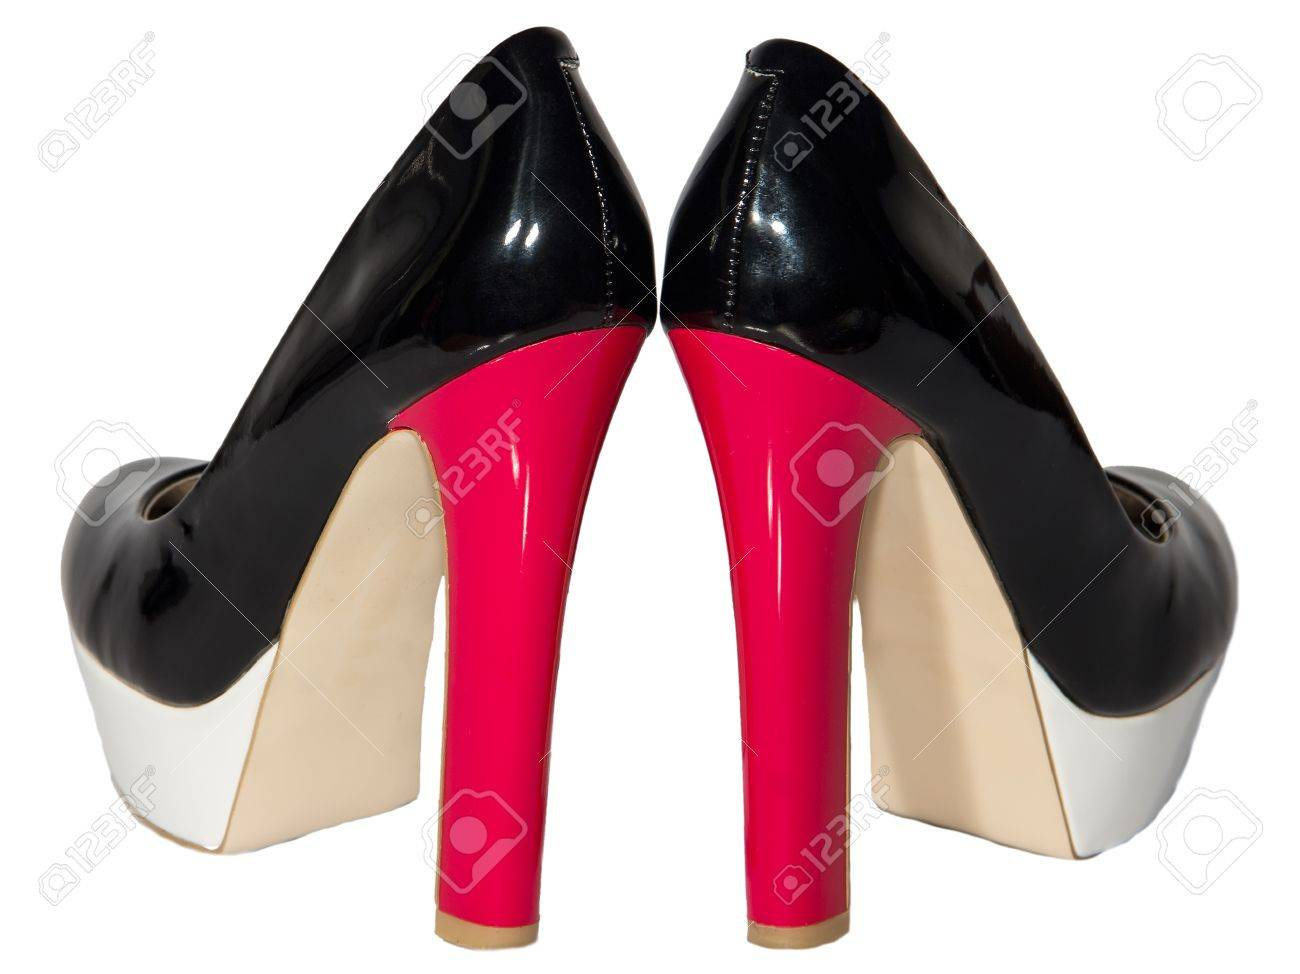 Women's Shoes Black Patent Leather Red